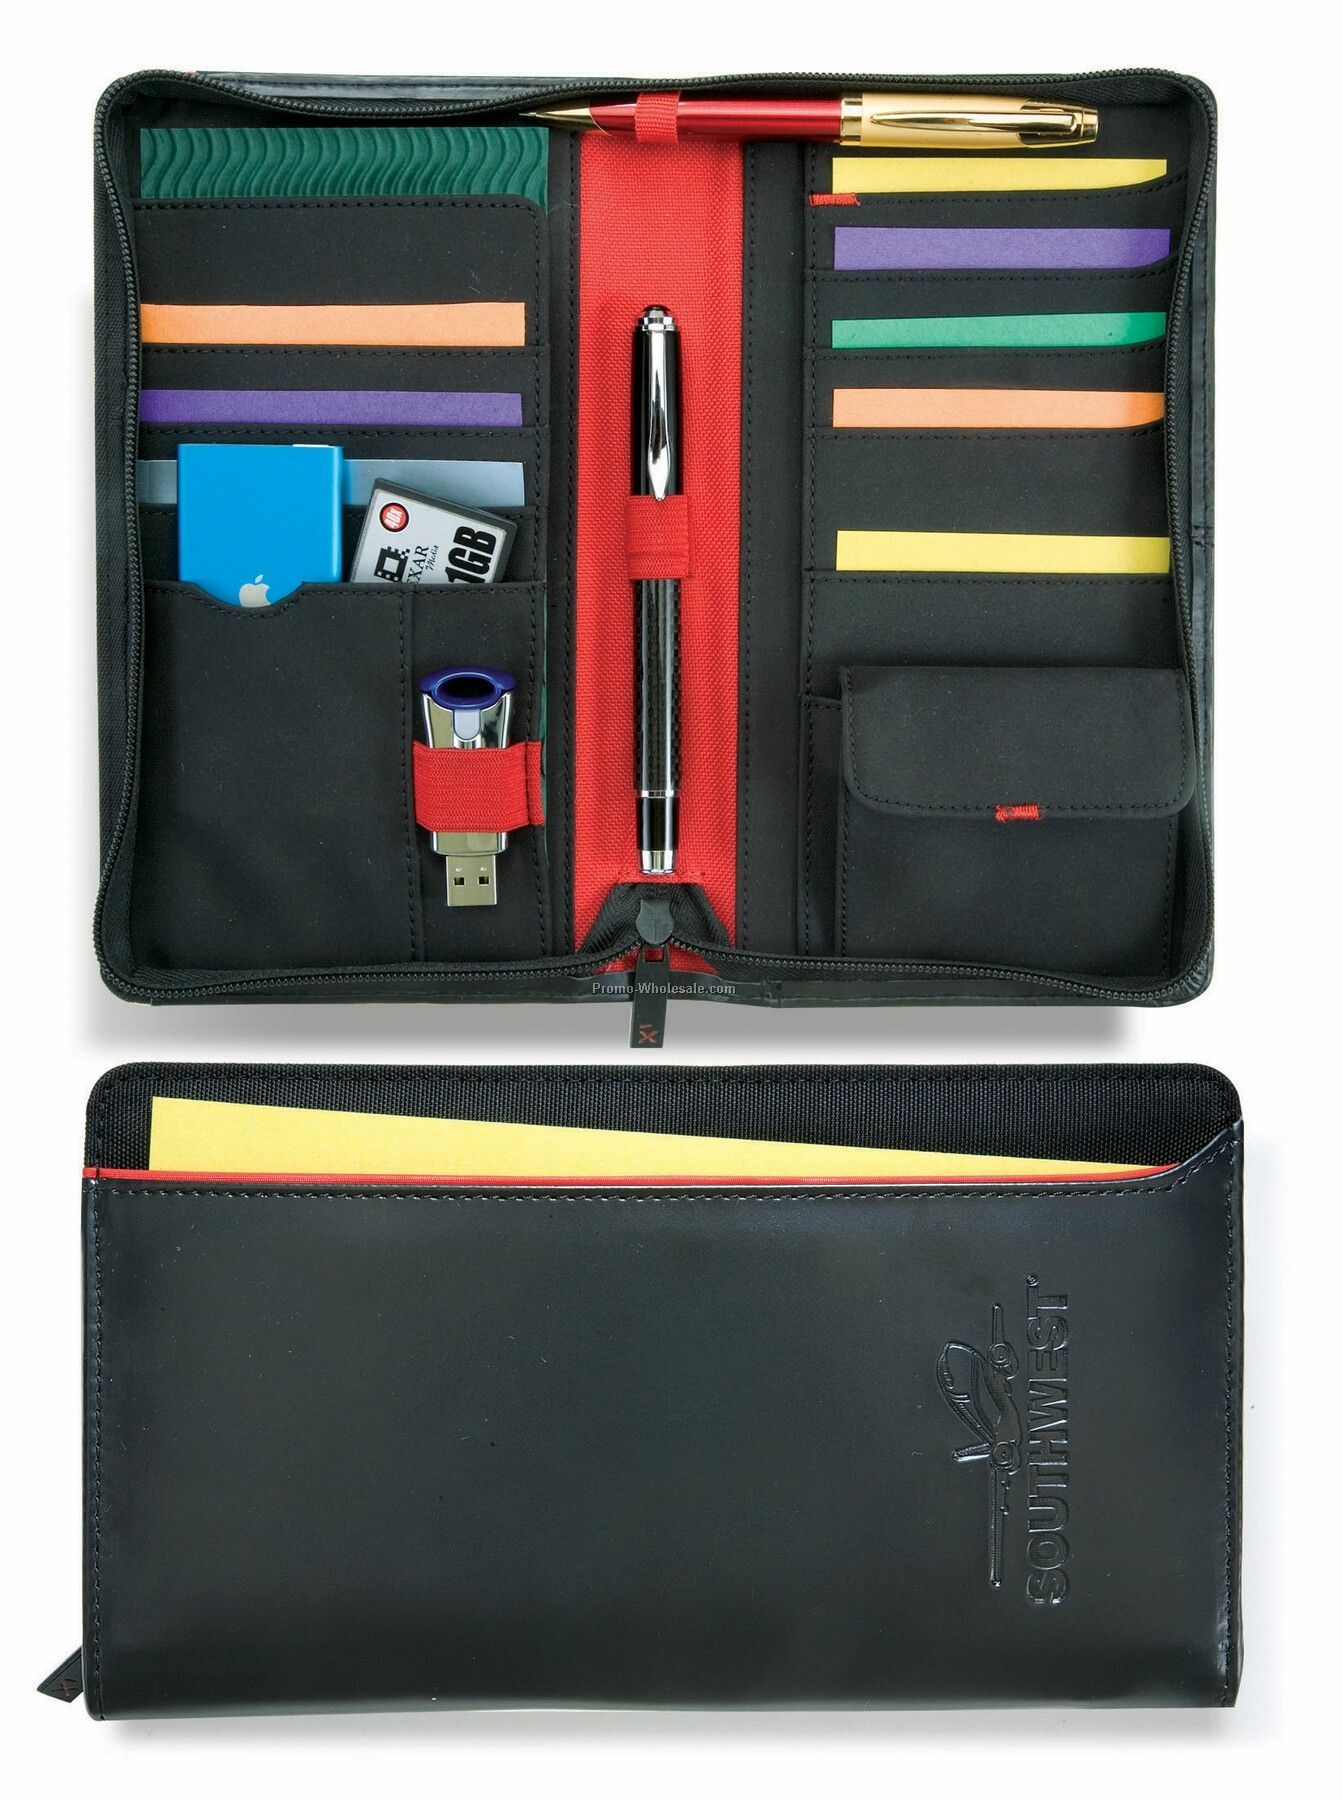 Matrix Travel Wallet - Black